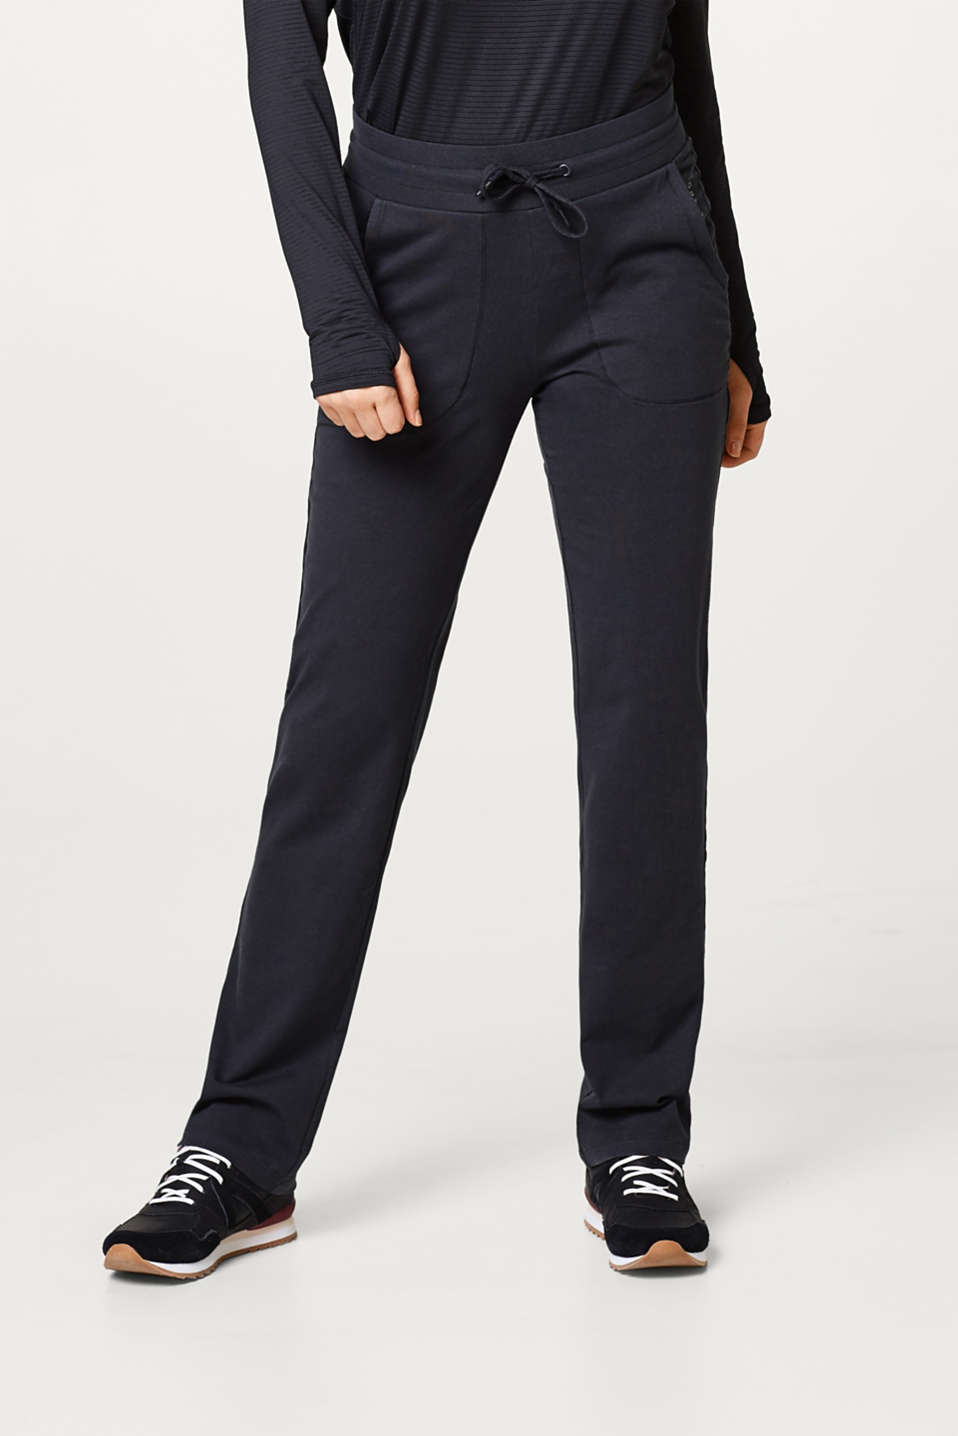 Esprit - Soft jersey trousers with a straight leg